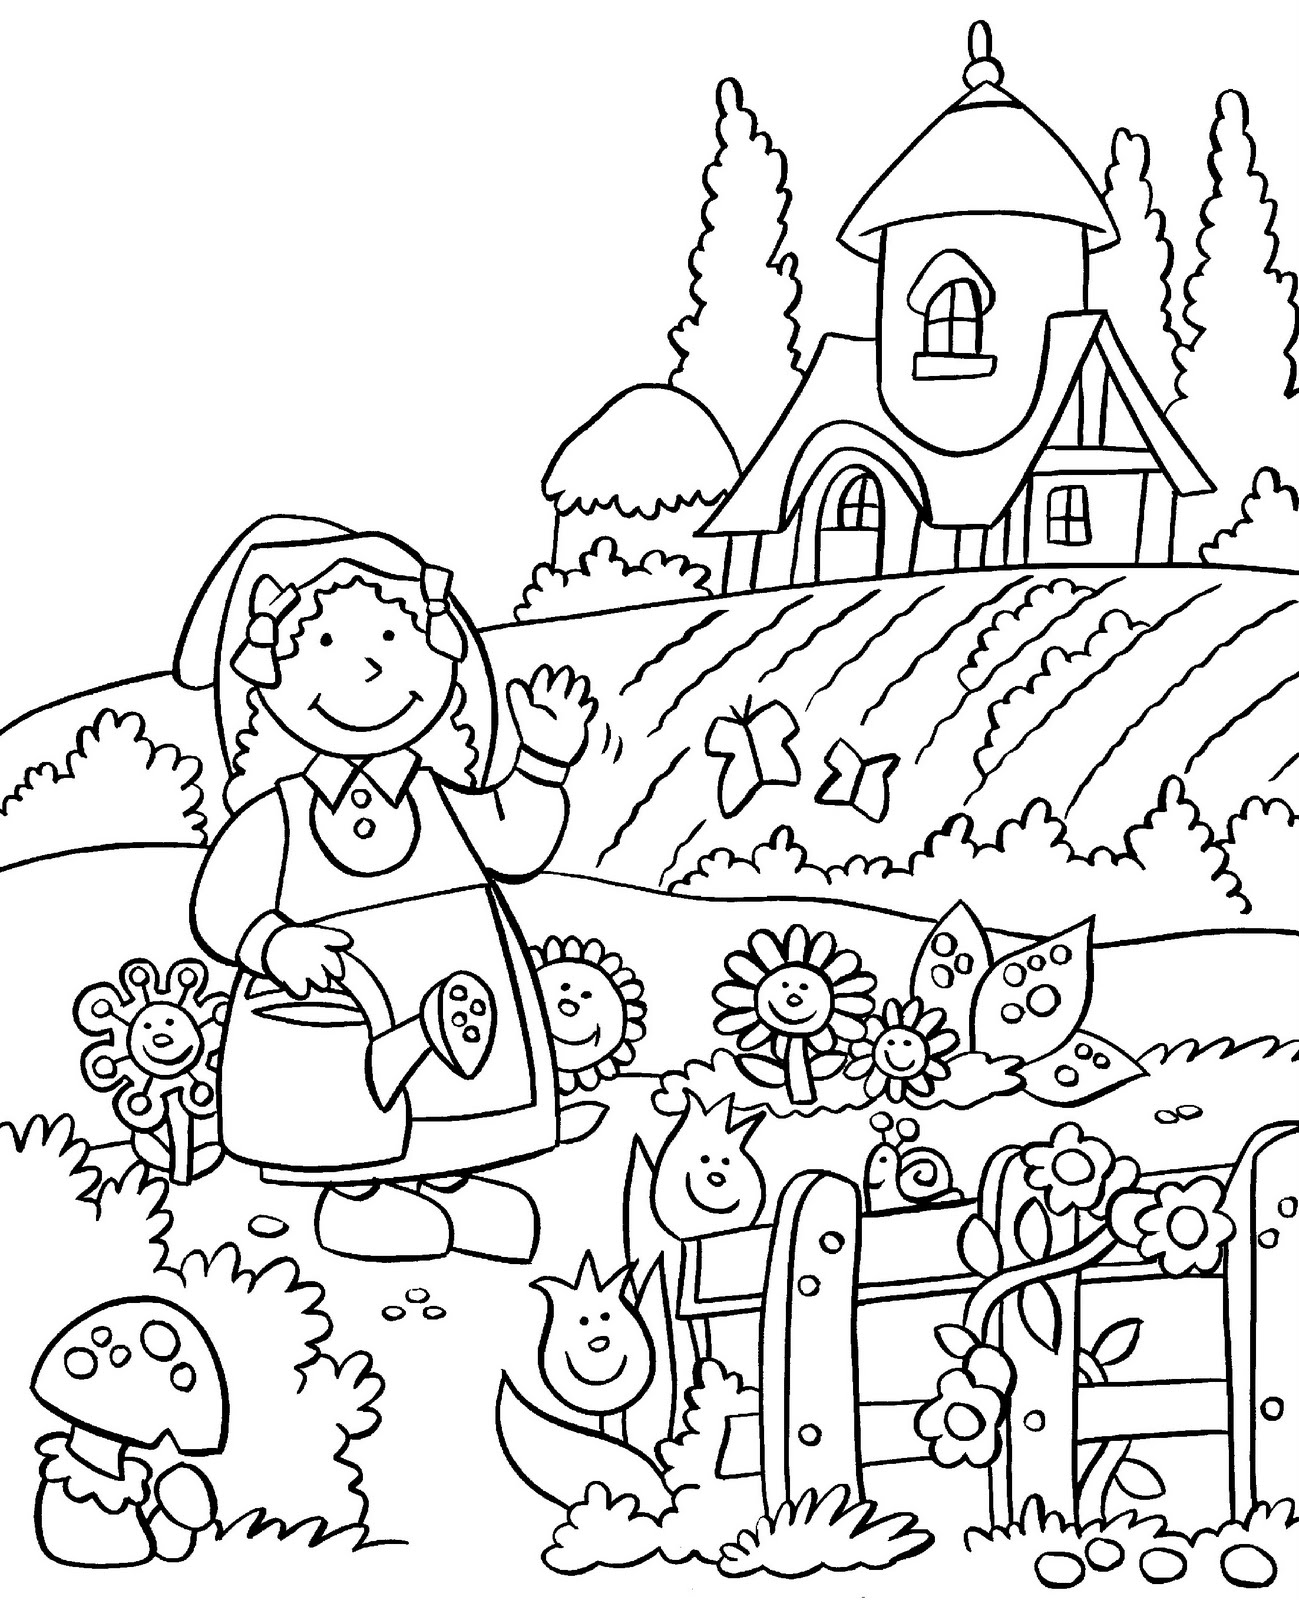 coloring pages free horticulture - photo#10